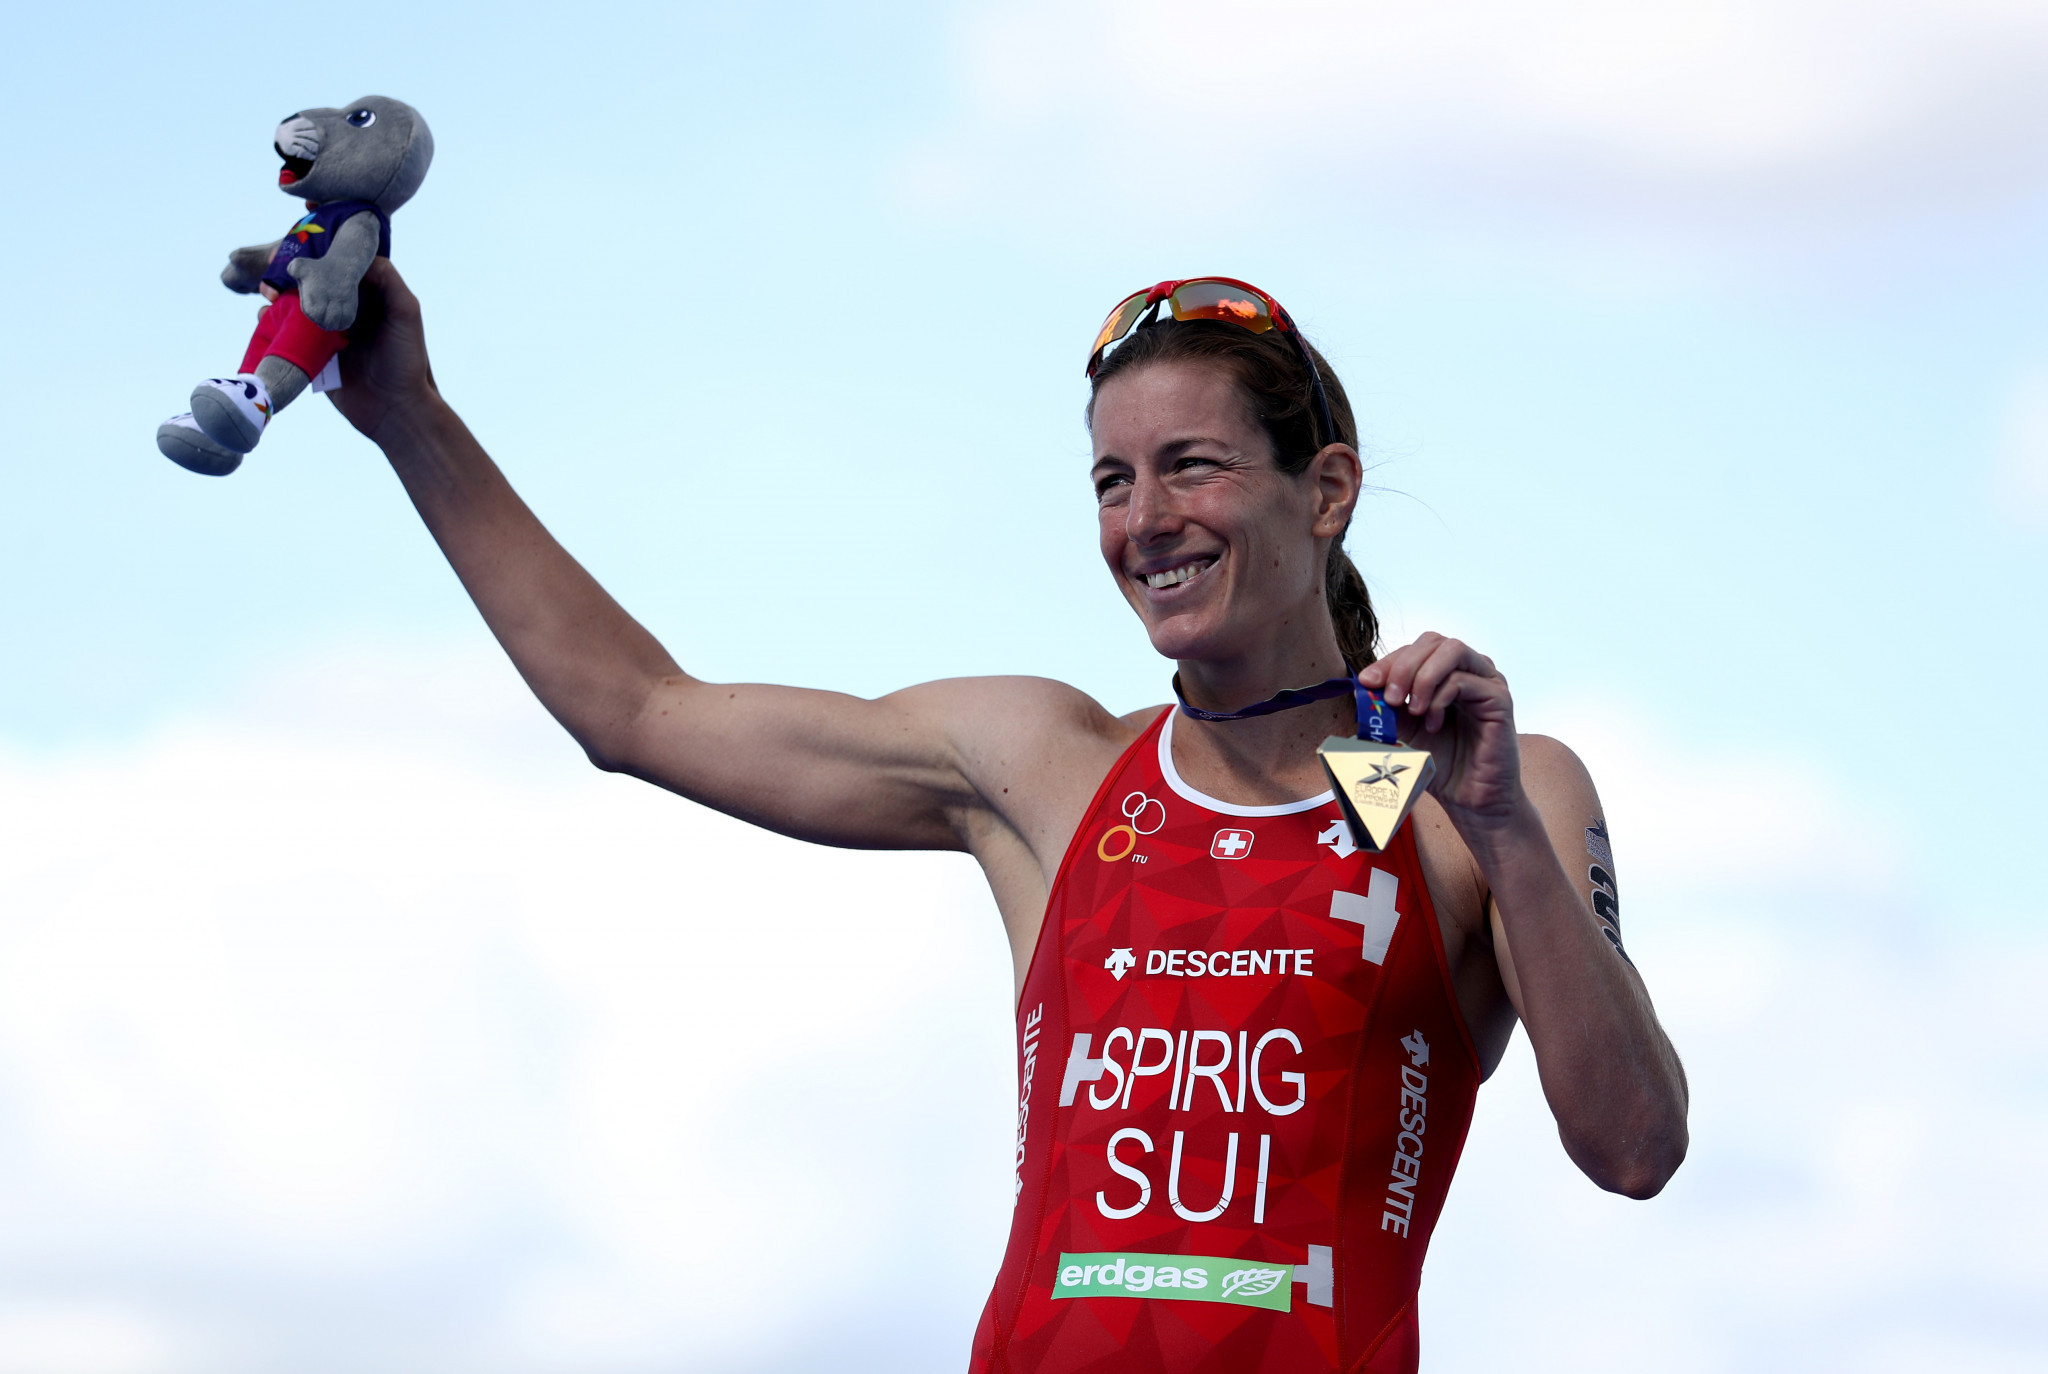 Switzerland's Spirig claims first triathlon gold medal of 2018 European Championships as swimming action concludes